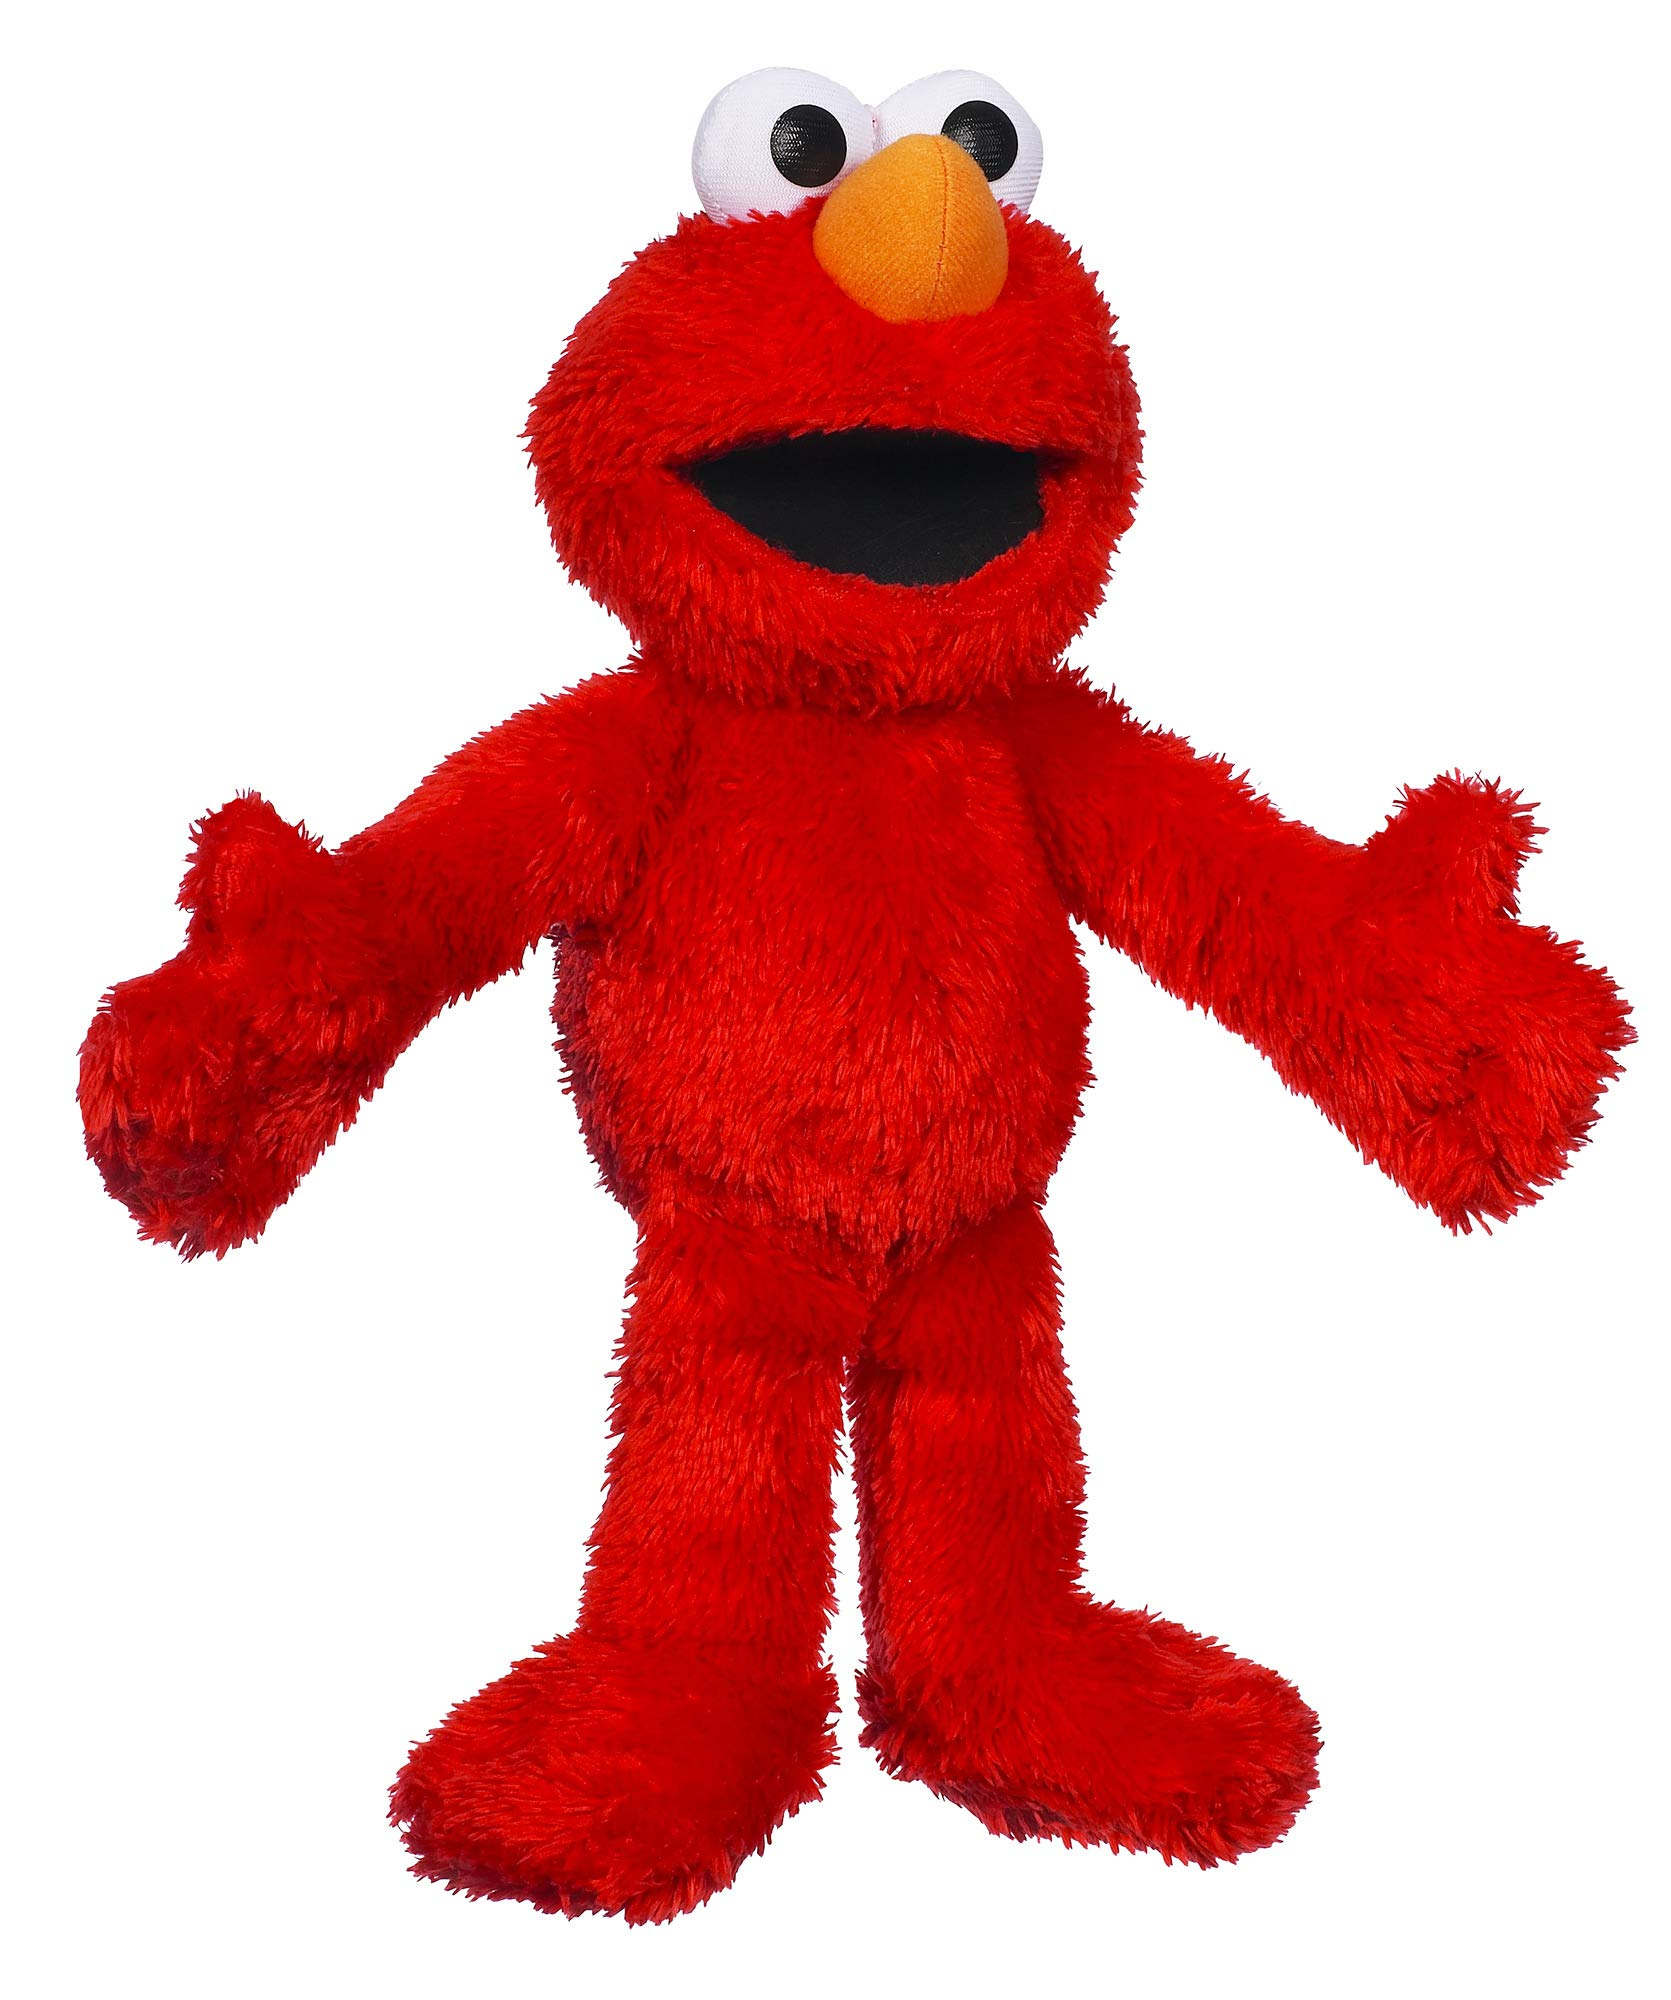 """Sesame Street Let's Cuddle Elmo Plush Doll: 10"""" Elmo Toy, Soft & Cuddly, Great for Snuggles, Elmo Toy for Kids 1 Year Old & Up (Amazon Exclusive)"""